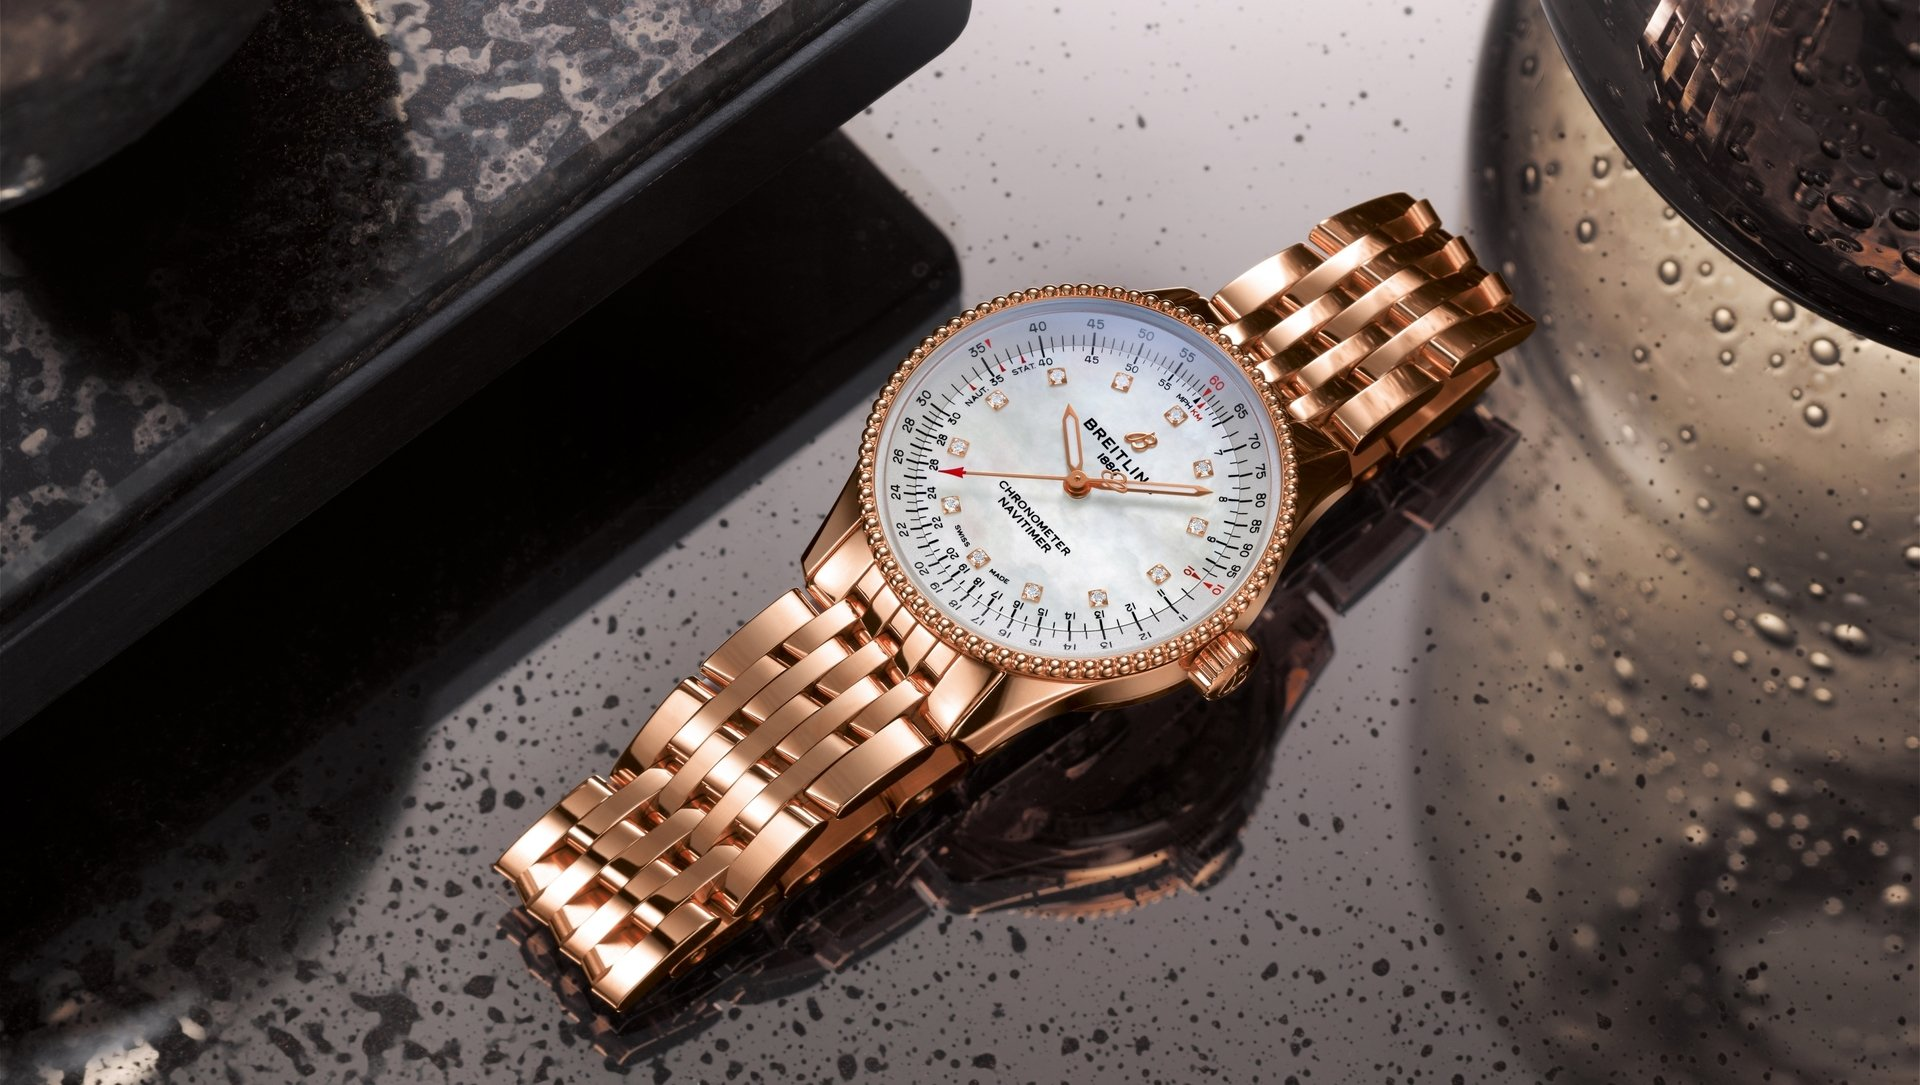 13_navitimer-automatic-35-in-18-k-red-gold-with-a-white-mother-of-pearl-dial-with-diamond-hour-markers-and-an-18-k-red-gold-navitimer-bracelet.jpg